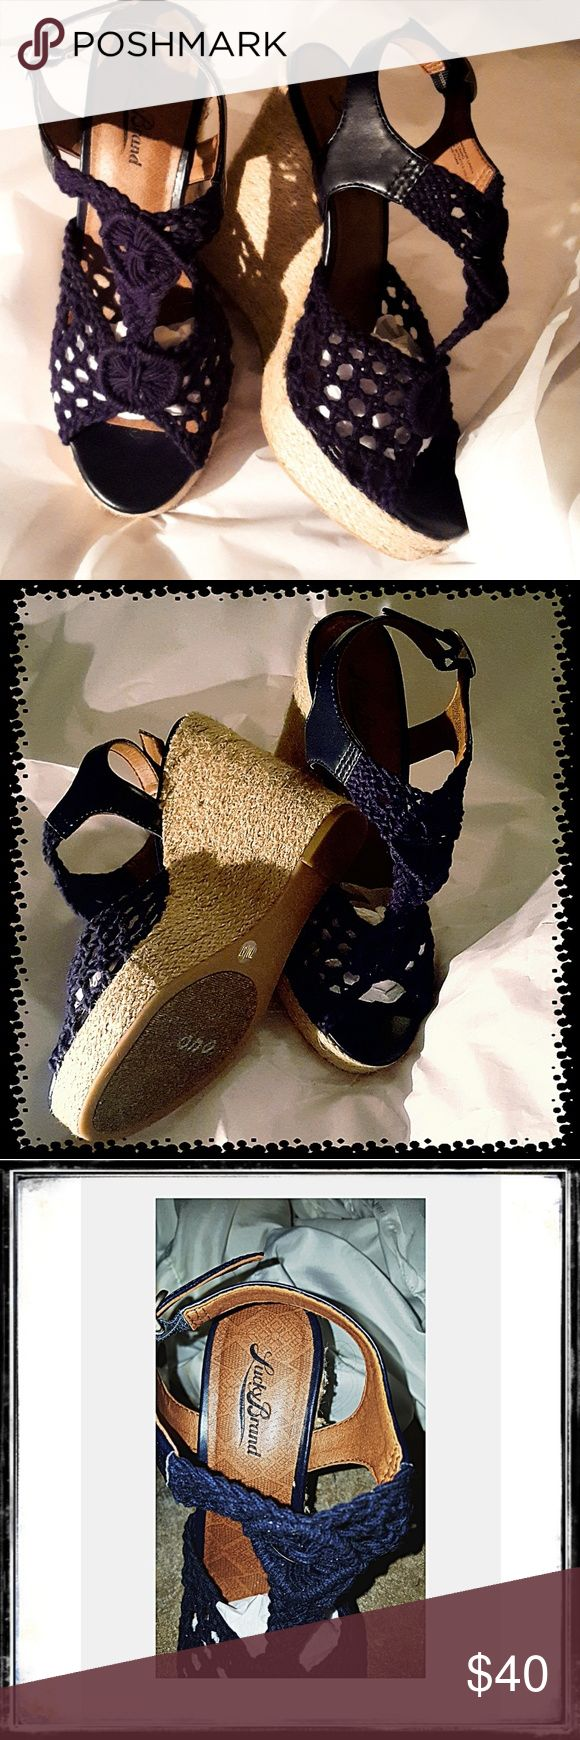 lucky brand boho navy wedge shoes crocet detailing lucky brand navy crochet wedge 4 1\2 inch heels size 7 NWOT wore around the house to try to see if I could walk didn't work.... Lucky Brand Shoes Wedges